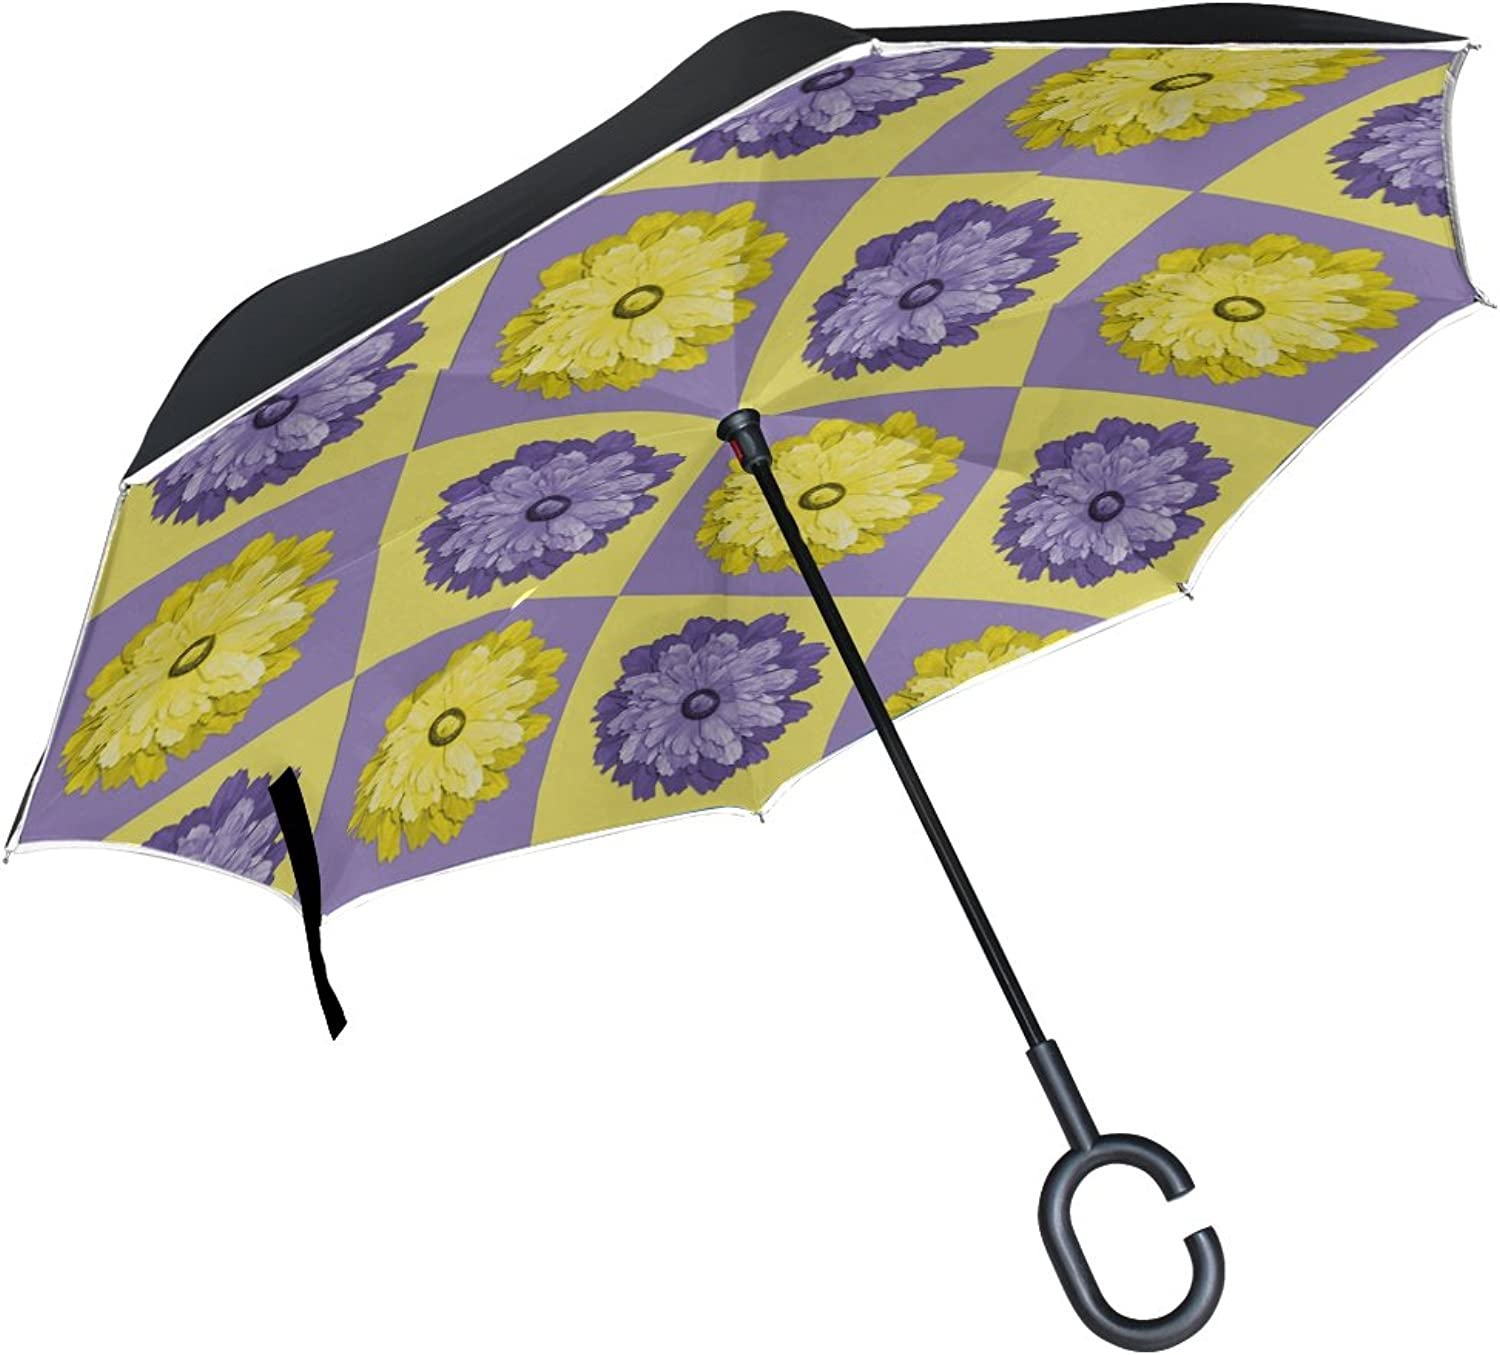 Double Layer Ingreened Quilt Pattern Yellow Purple Textile Umbrellas Reverse Folding Umbrella Windproof Uv Predection Big Straight Umbrella for Car Rain Outdoor with CShaped Handle